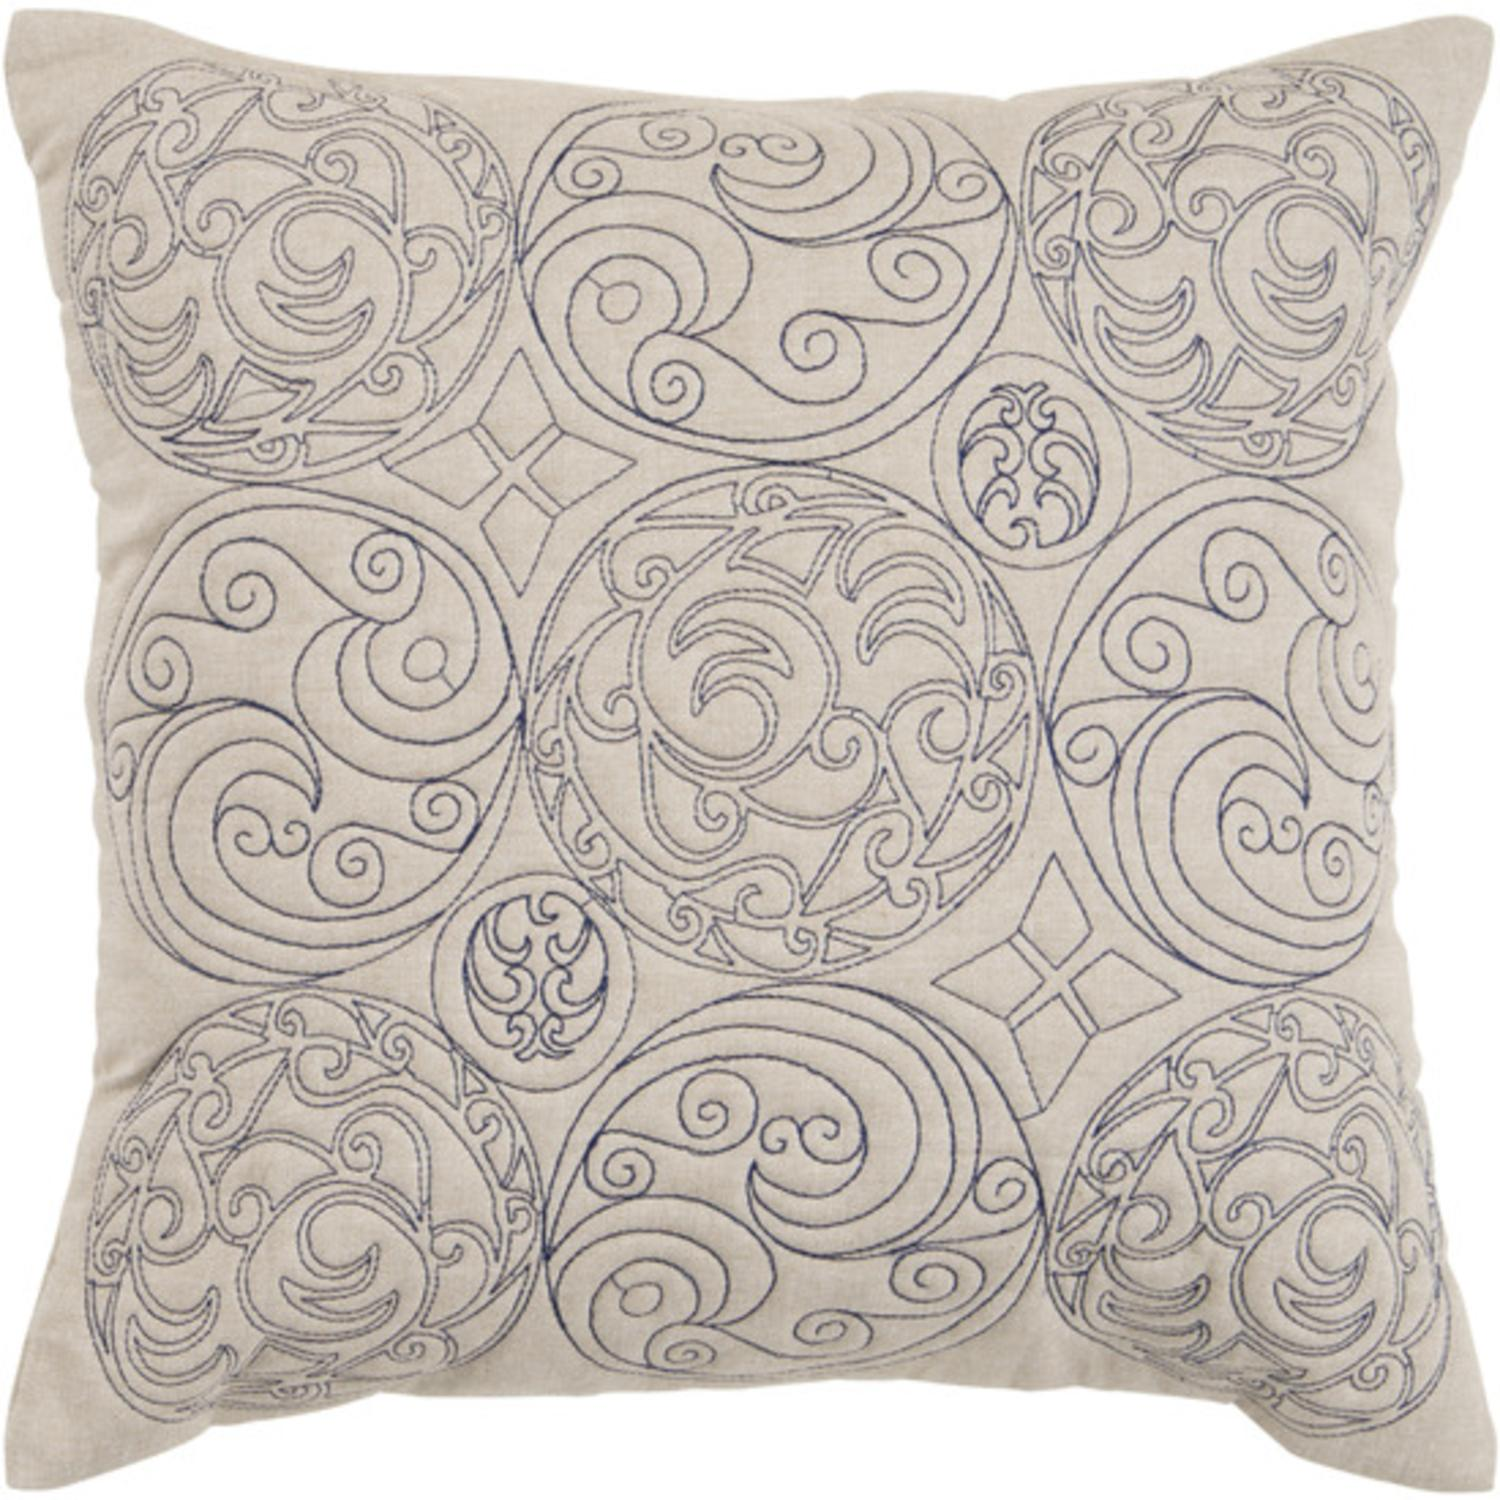 "18"" Medieval Circle Scroll Black Ink and Parchment Decorative Down Throw Pillow"